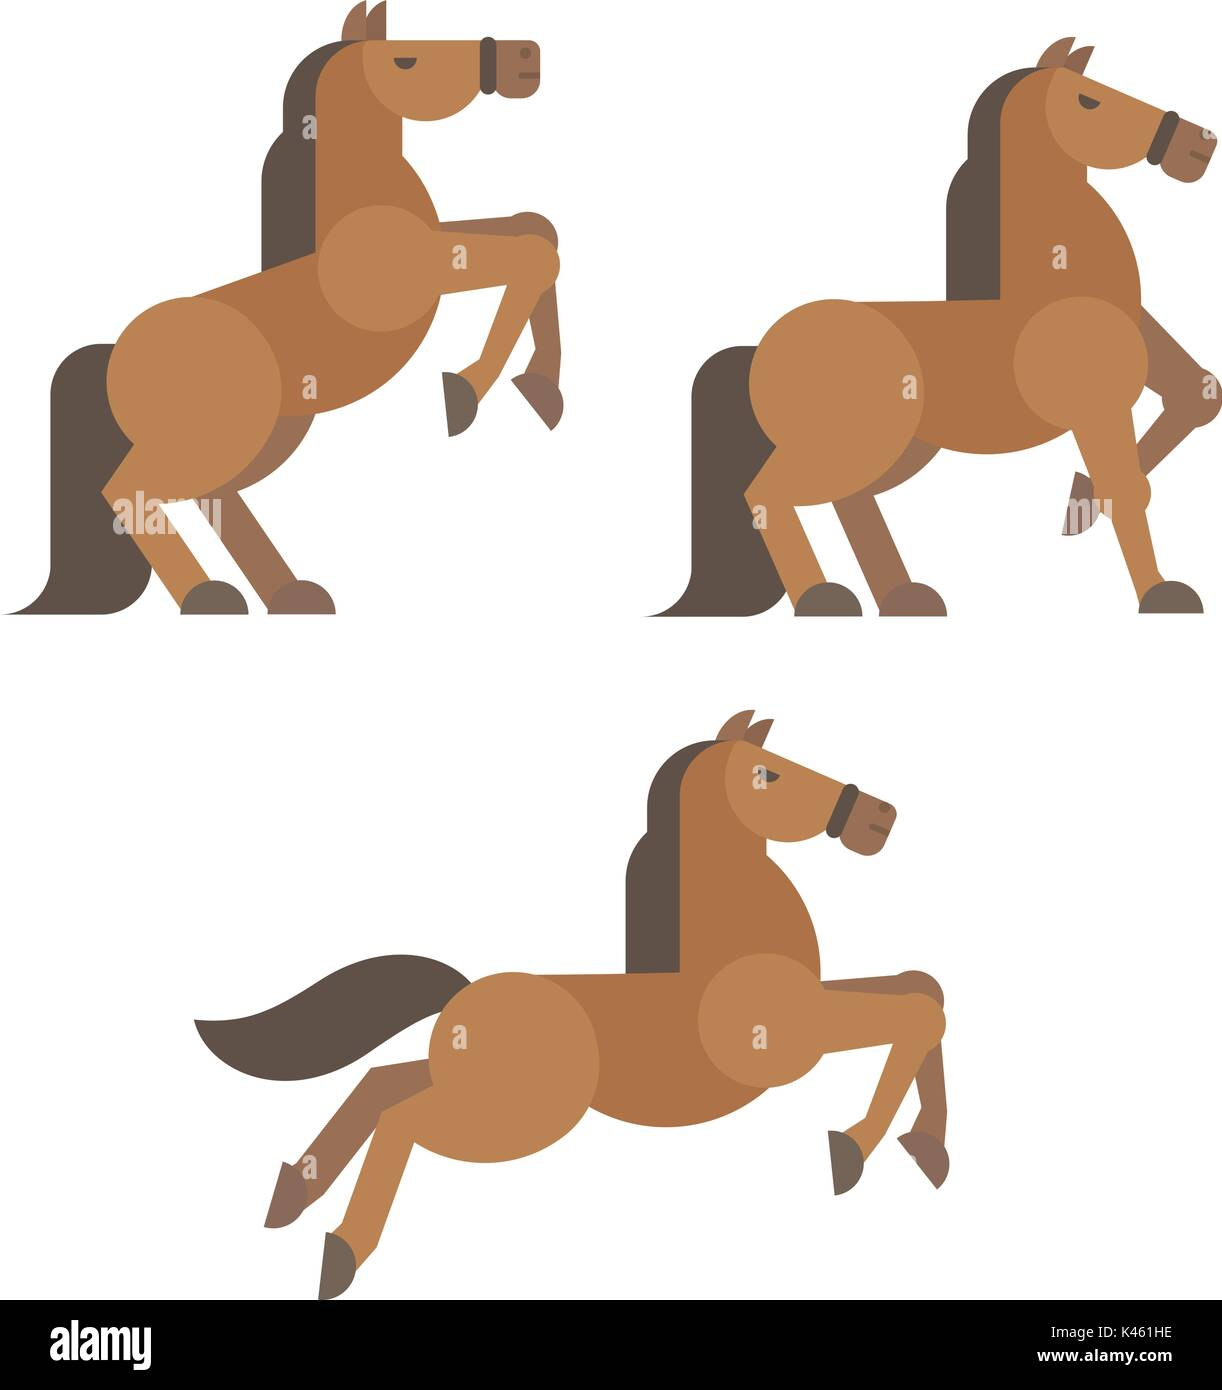 Horse poses flat illustration. Brown horse rearing, standing, running poses - Stock Image